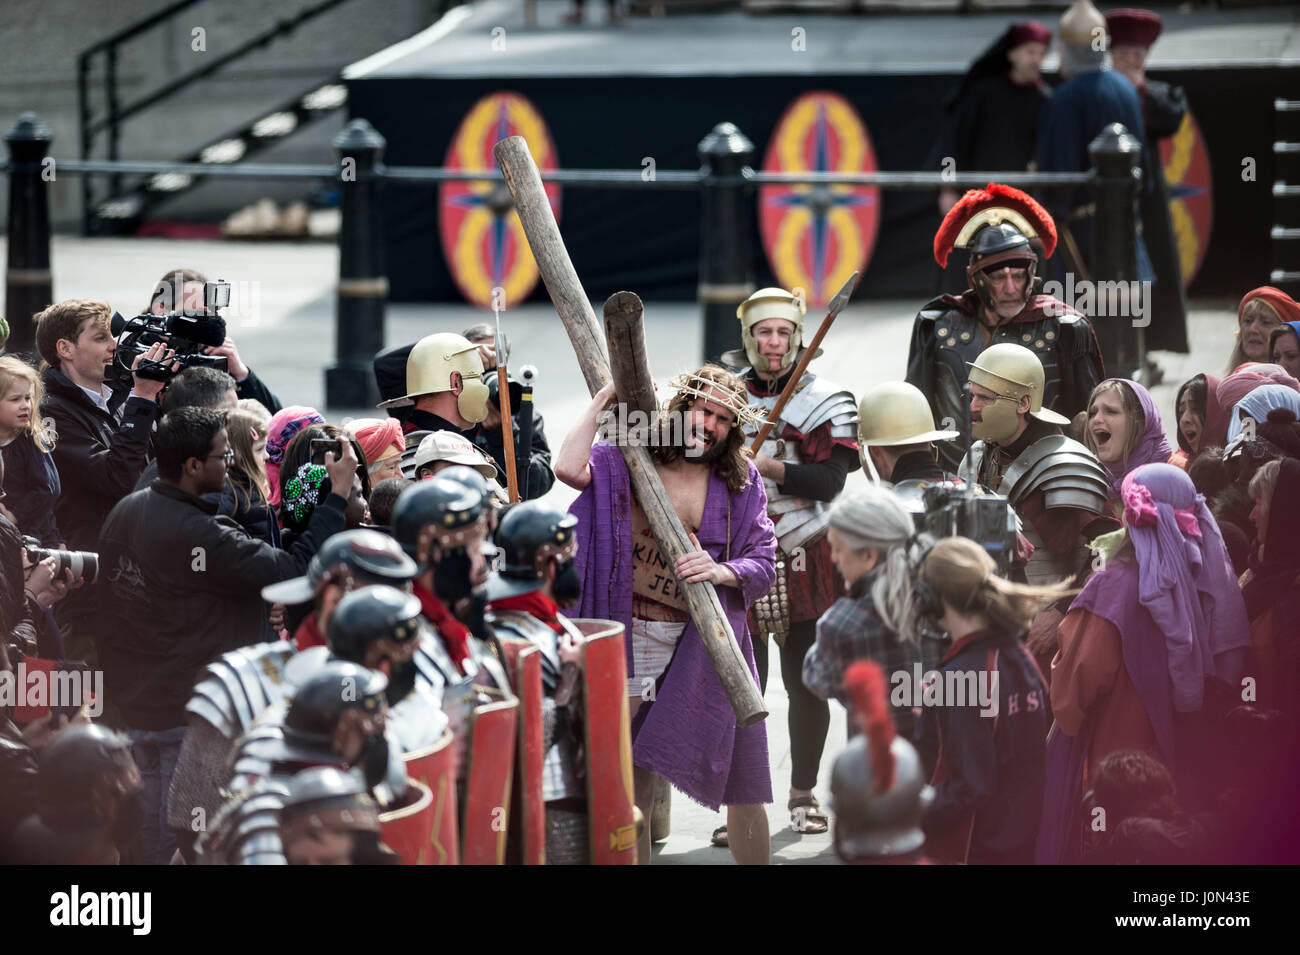 London, UK. 14th April, 2017. The Passion of Jesus play by the Wintershall Charitable Trust in Trafalgar Square - Stock Image